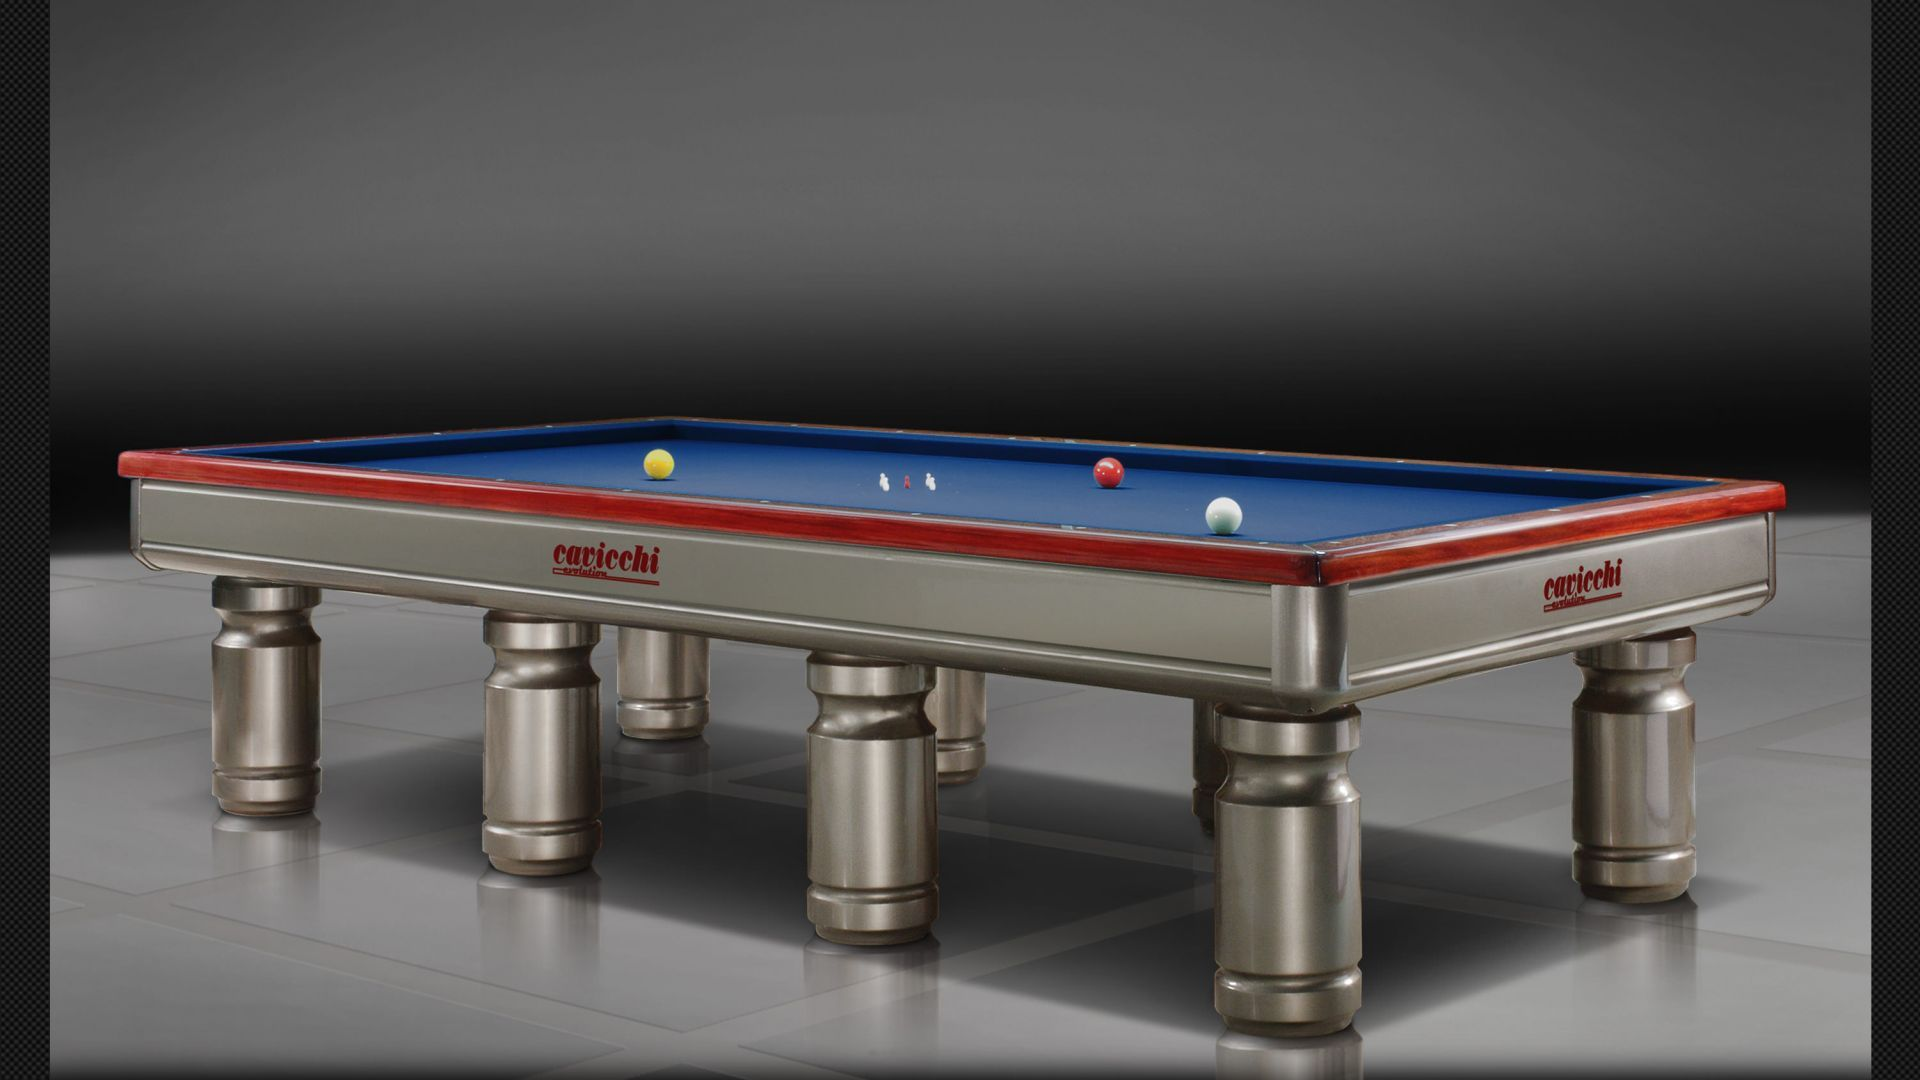 Evolution Billiard Biliardi Cavicchi - Sleek pool table